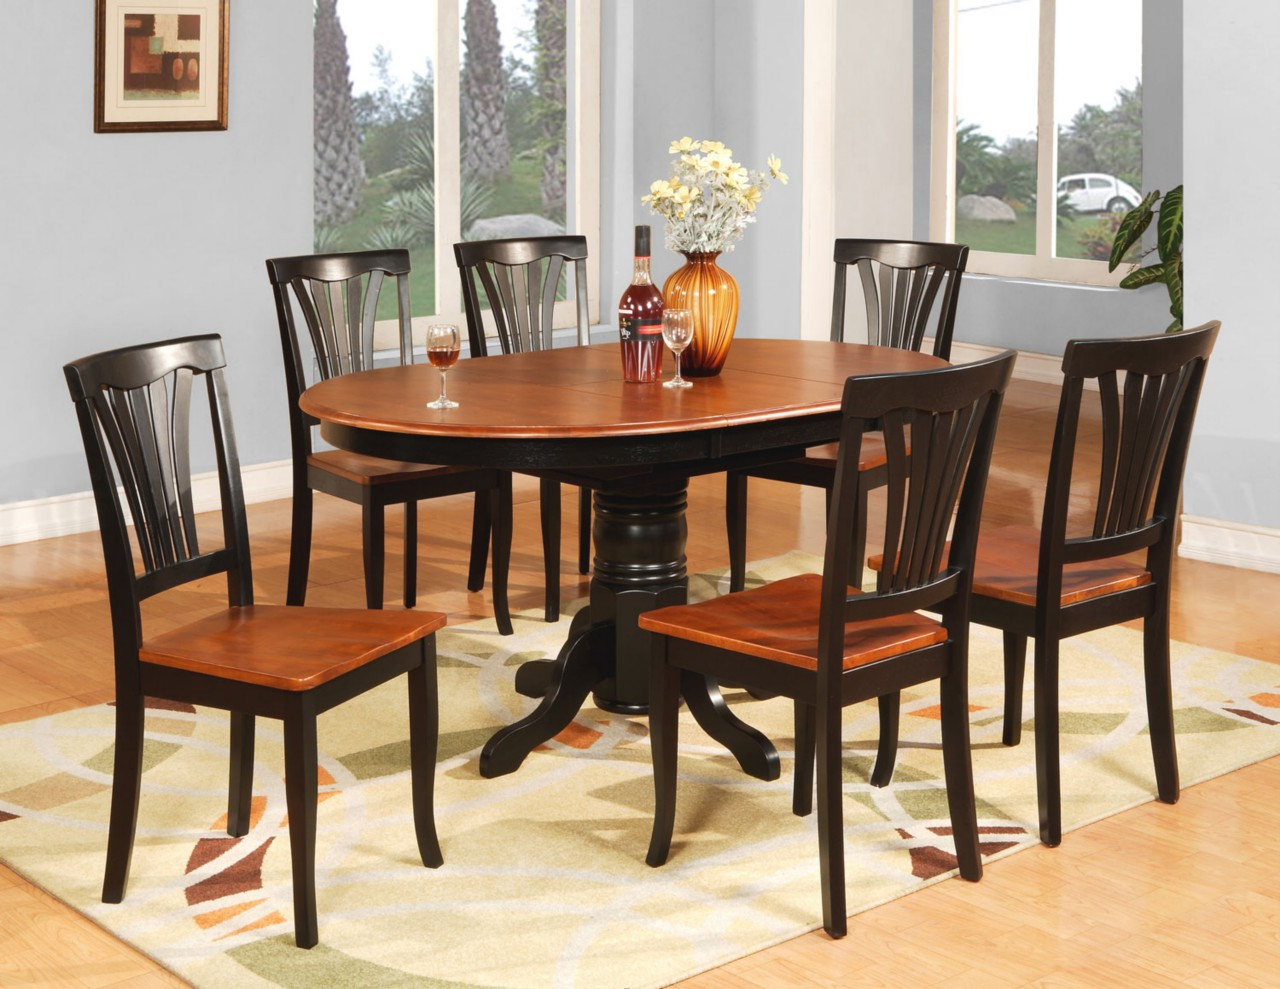 Best ideas about Kitchen & Dining Room Table . Save or Pin 7 PC OVAL DINETTE KITCHEN DINING ROOM TABLE & 6 CHAIRS Now.